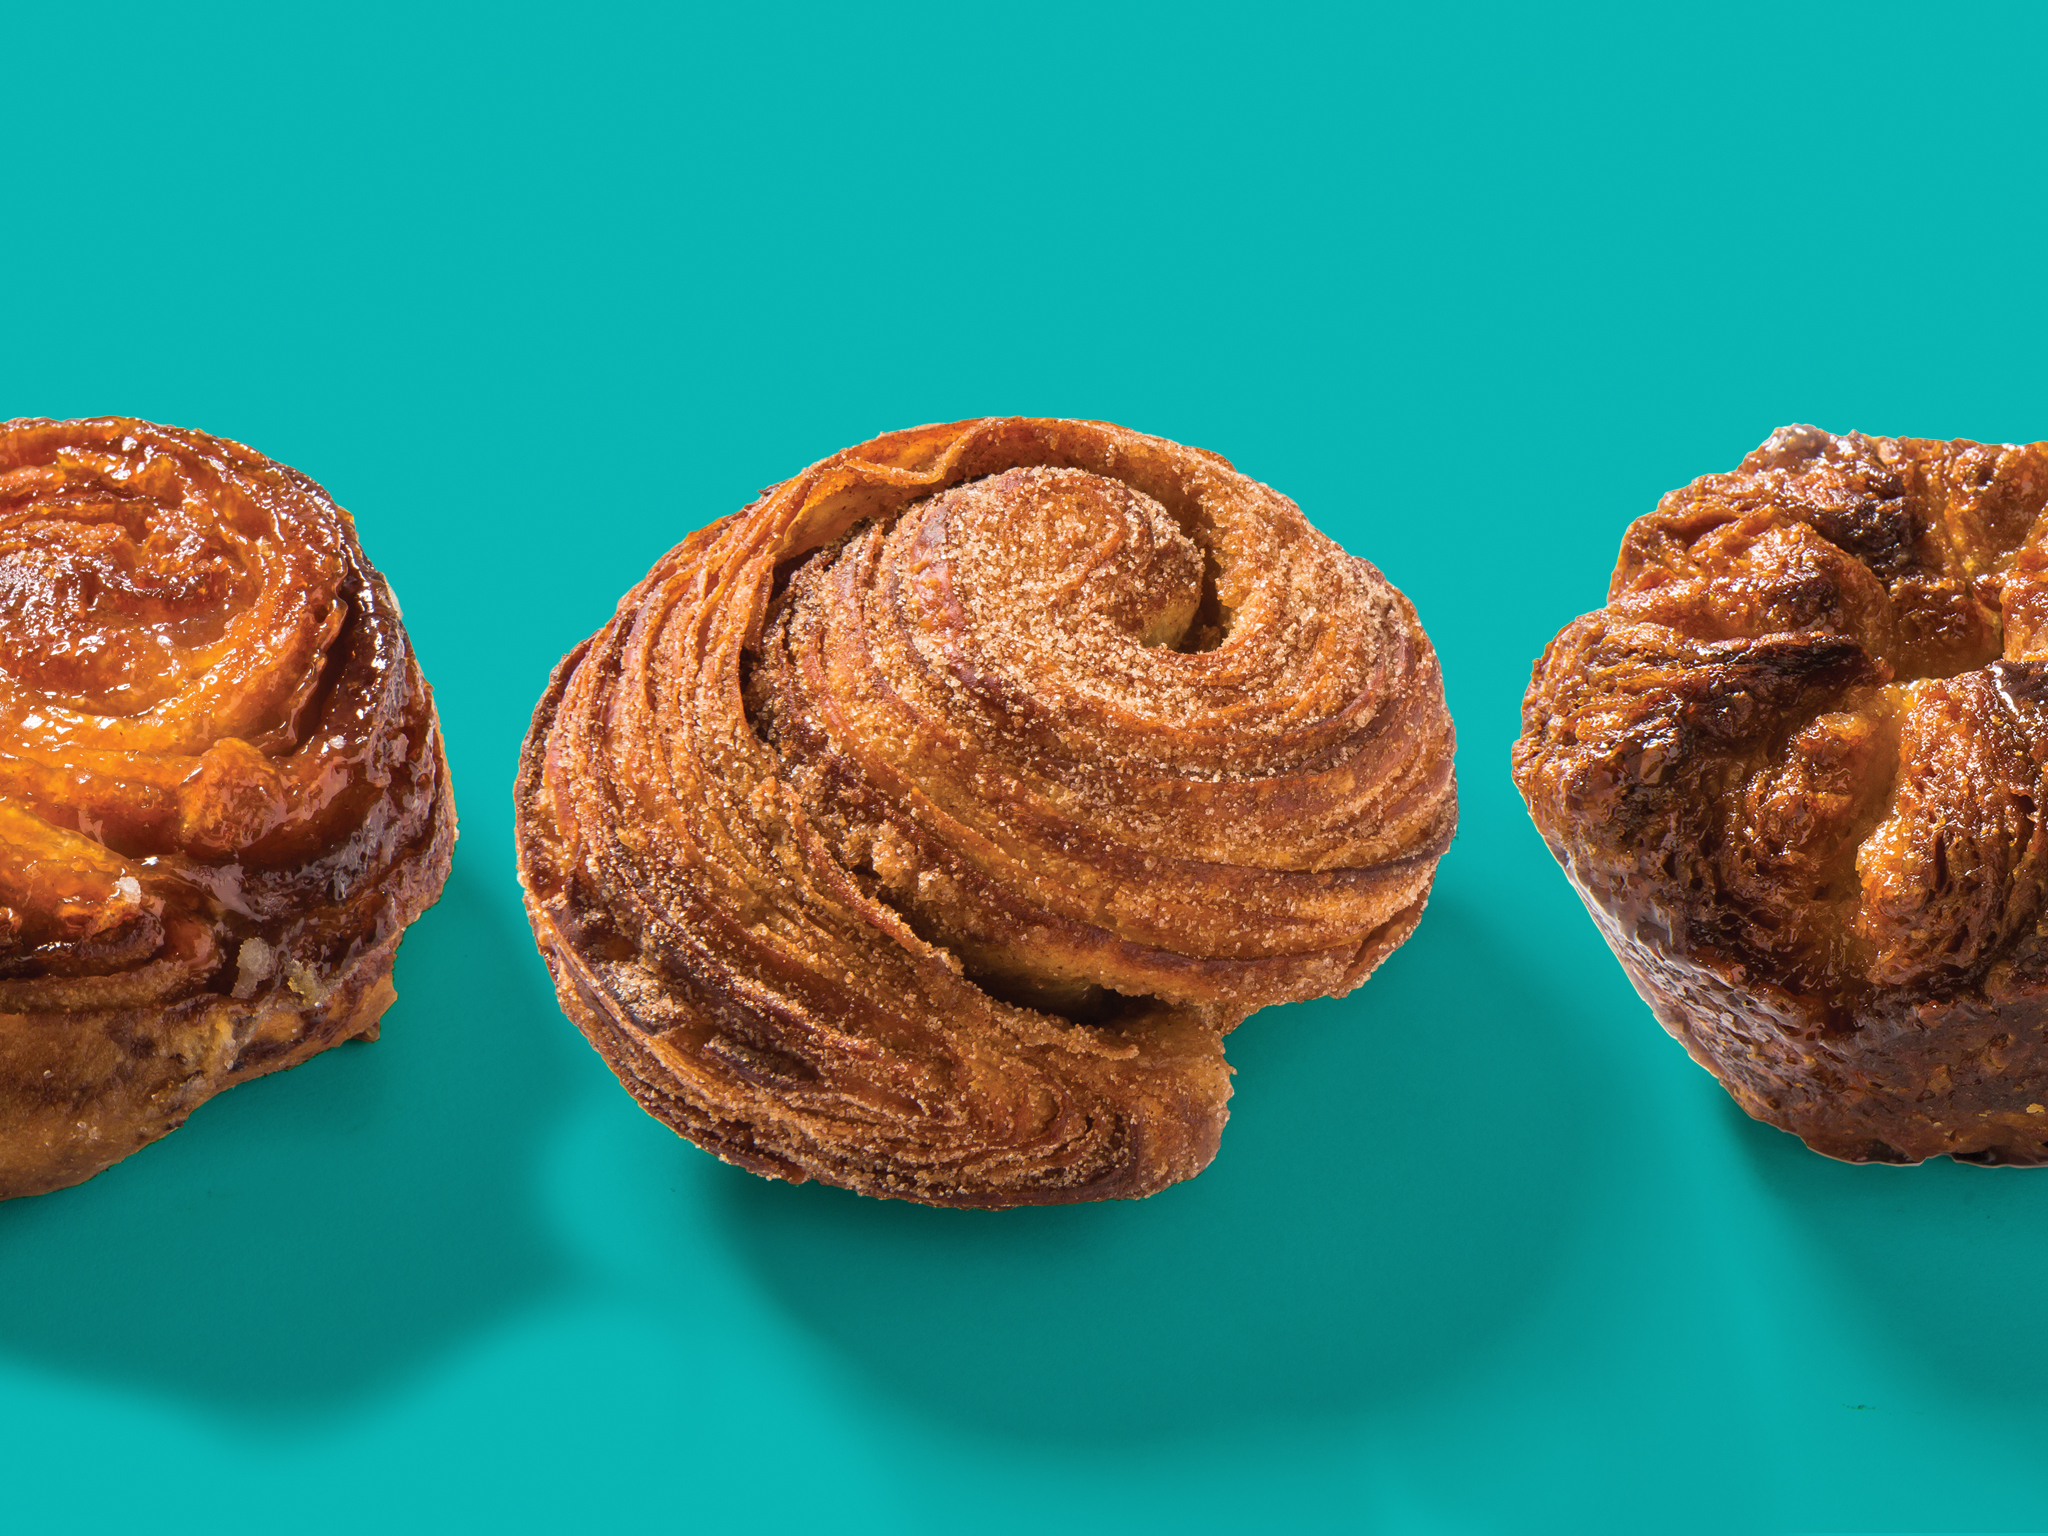 The best kouign amanns in Sydney